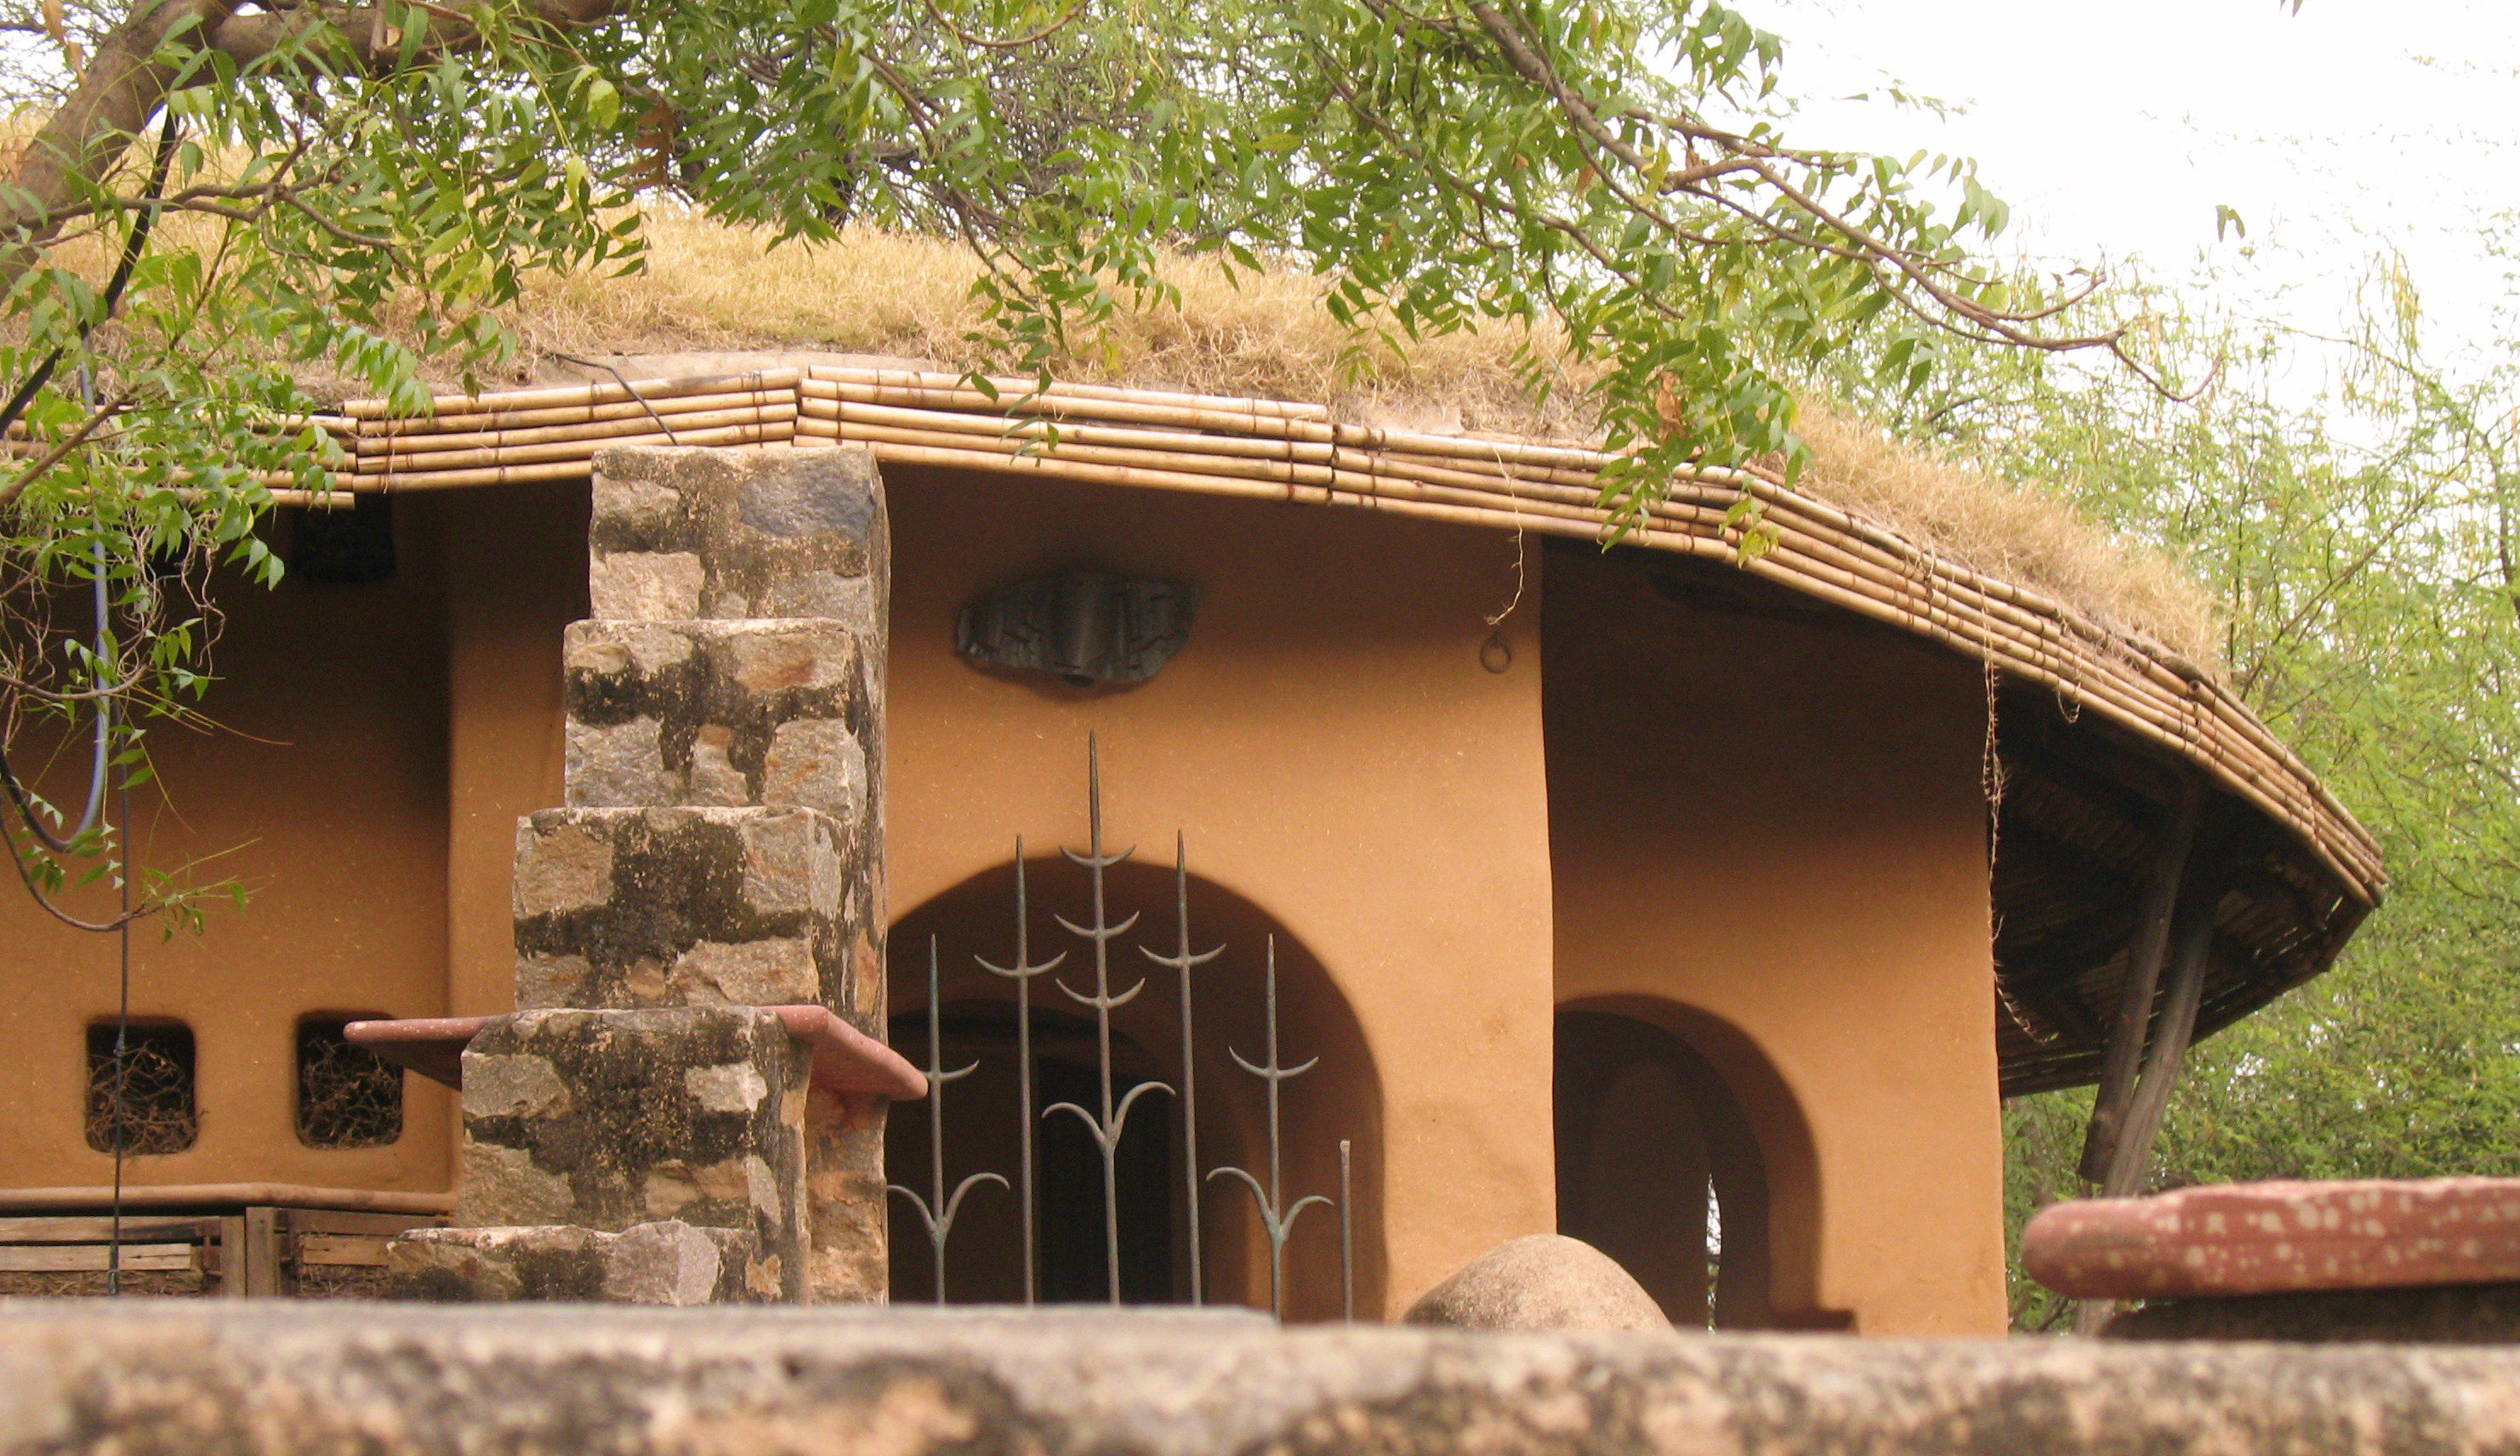 Architecture and interior design projects in india mud house katchi kothi at anangpur